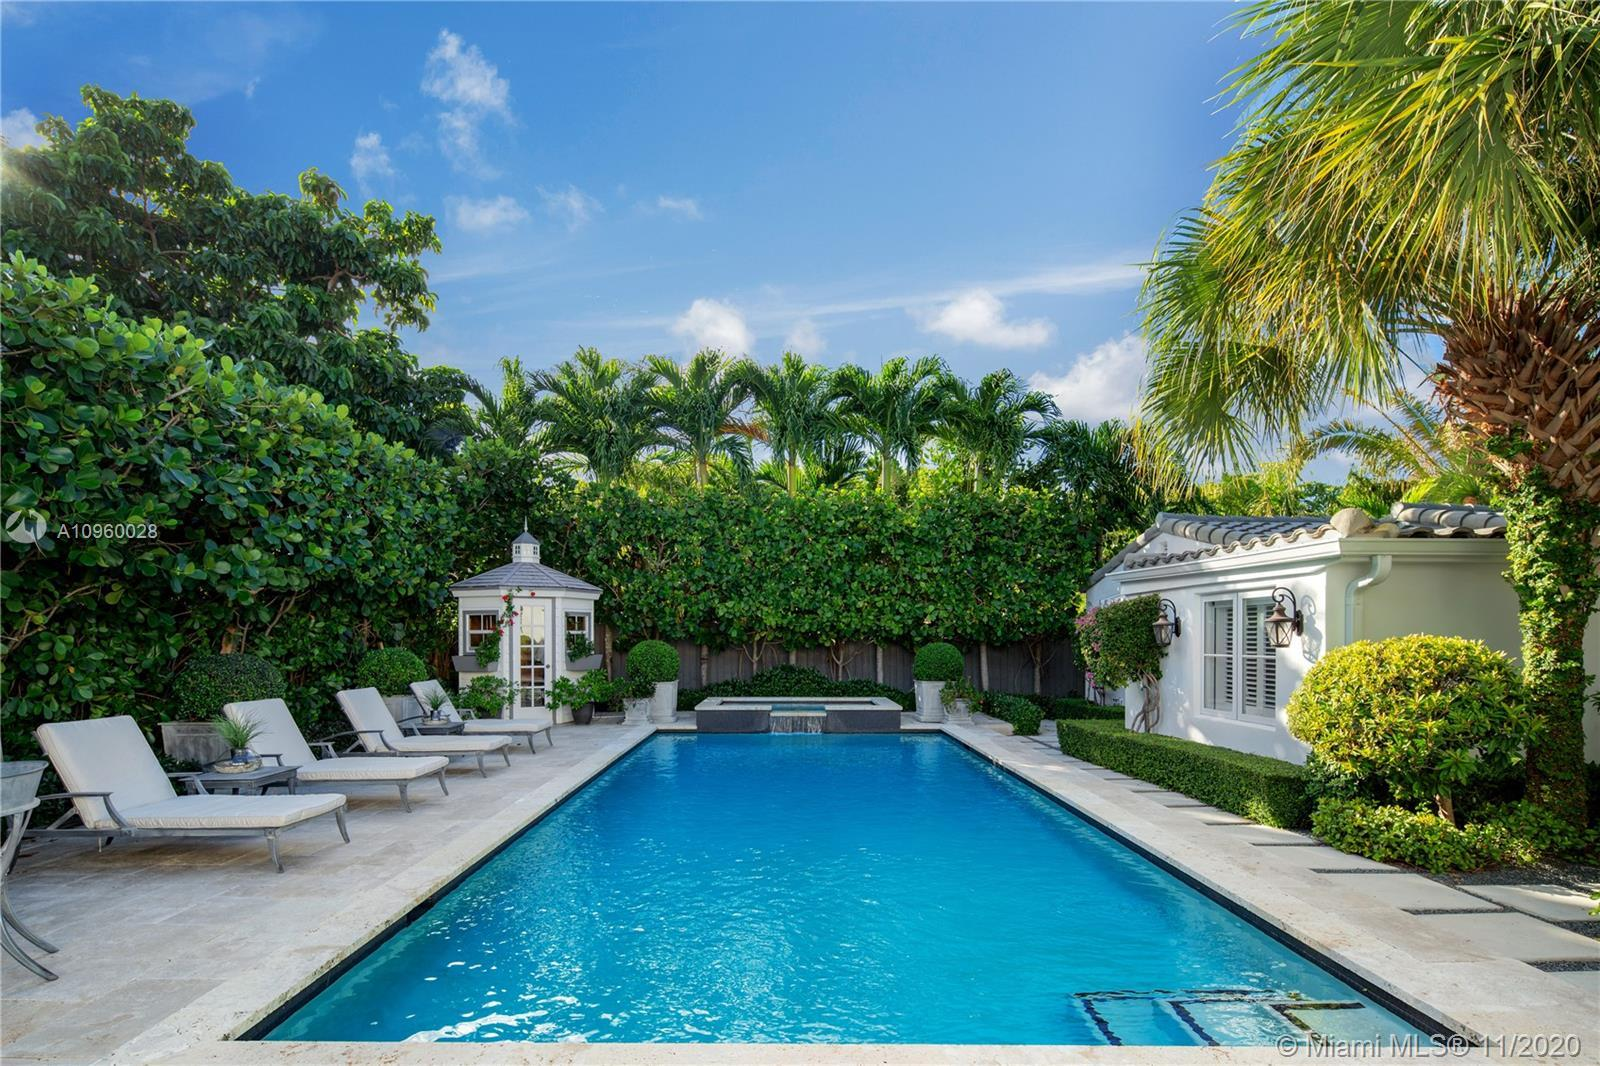 2534 Flamingo Dr offers the rarest combination of features for the most refined buyers.This elegant